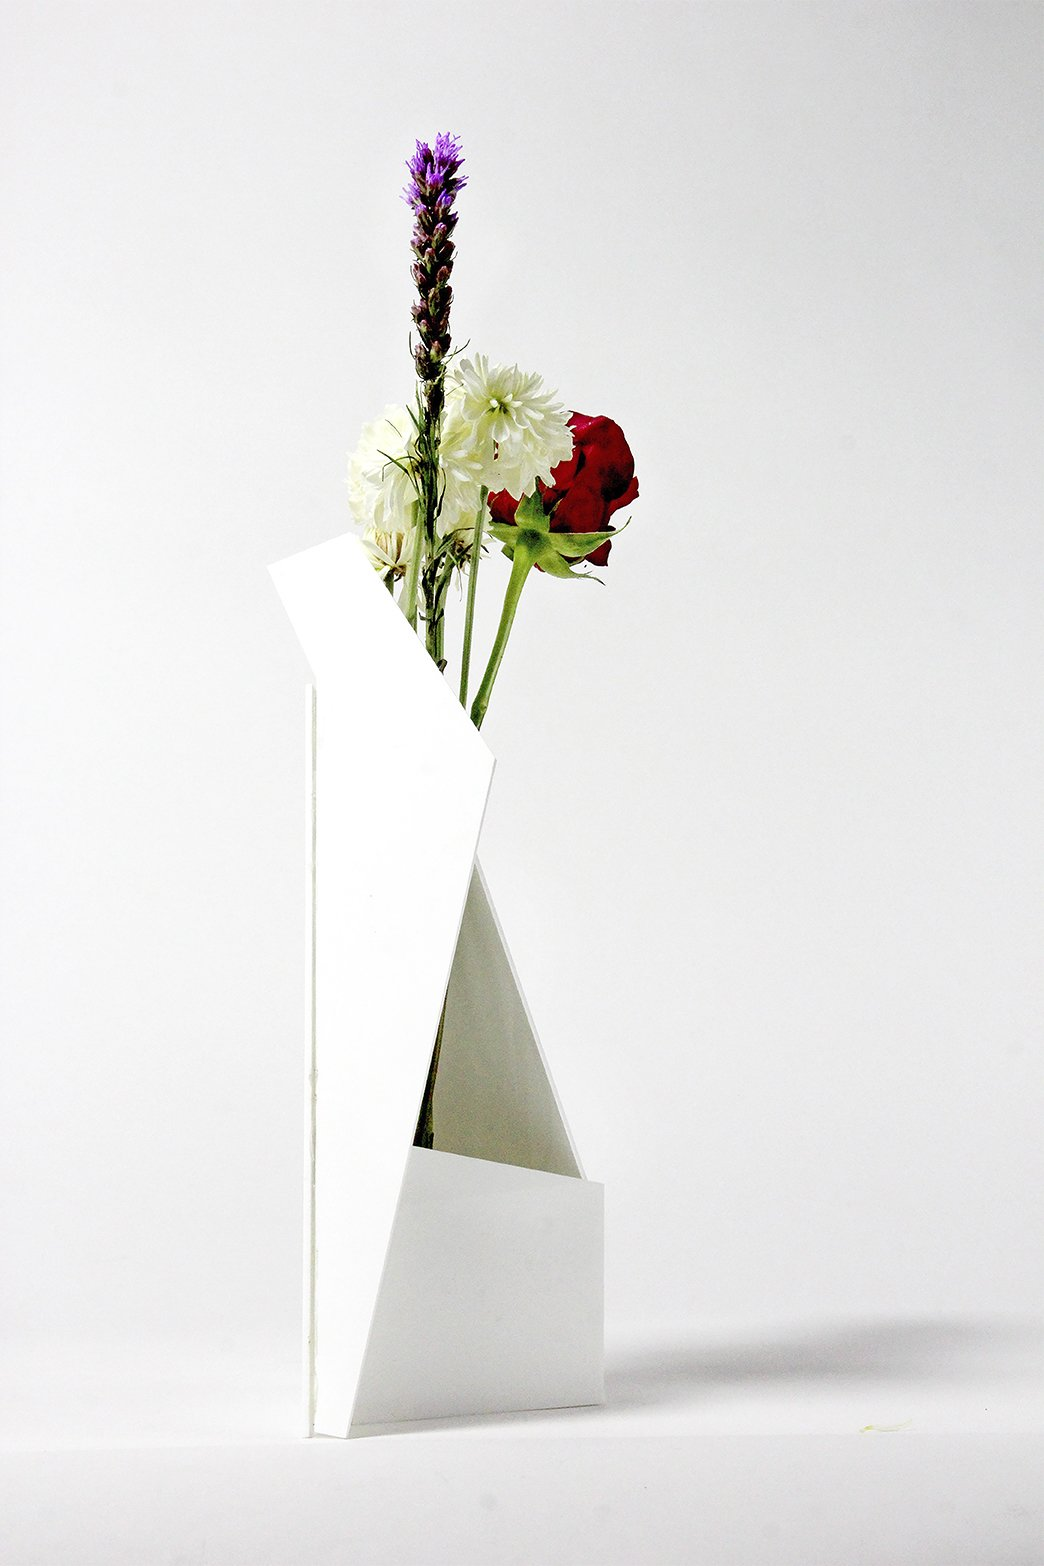 Vaza vase by Maryam Turkey  Photo 31 of 43 in Young Guns 2017: New Designers Making Waves